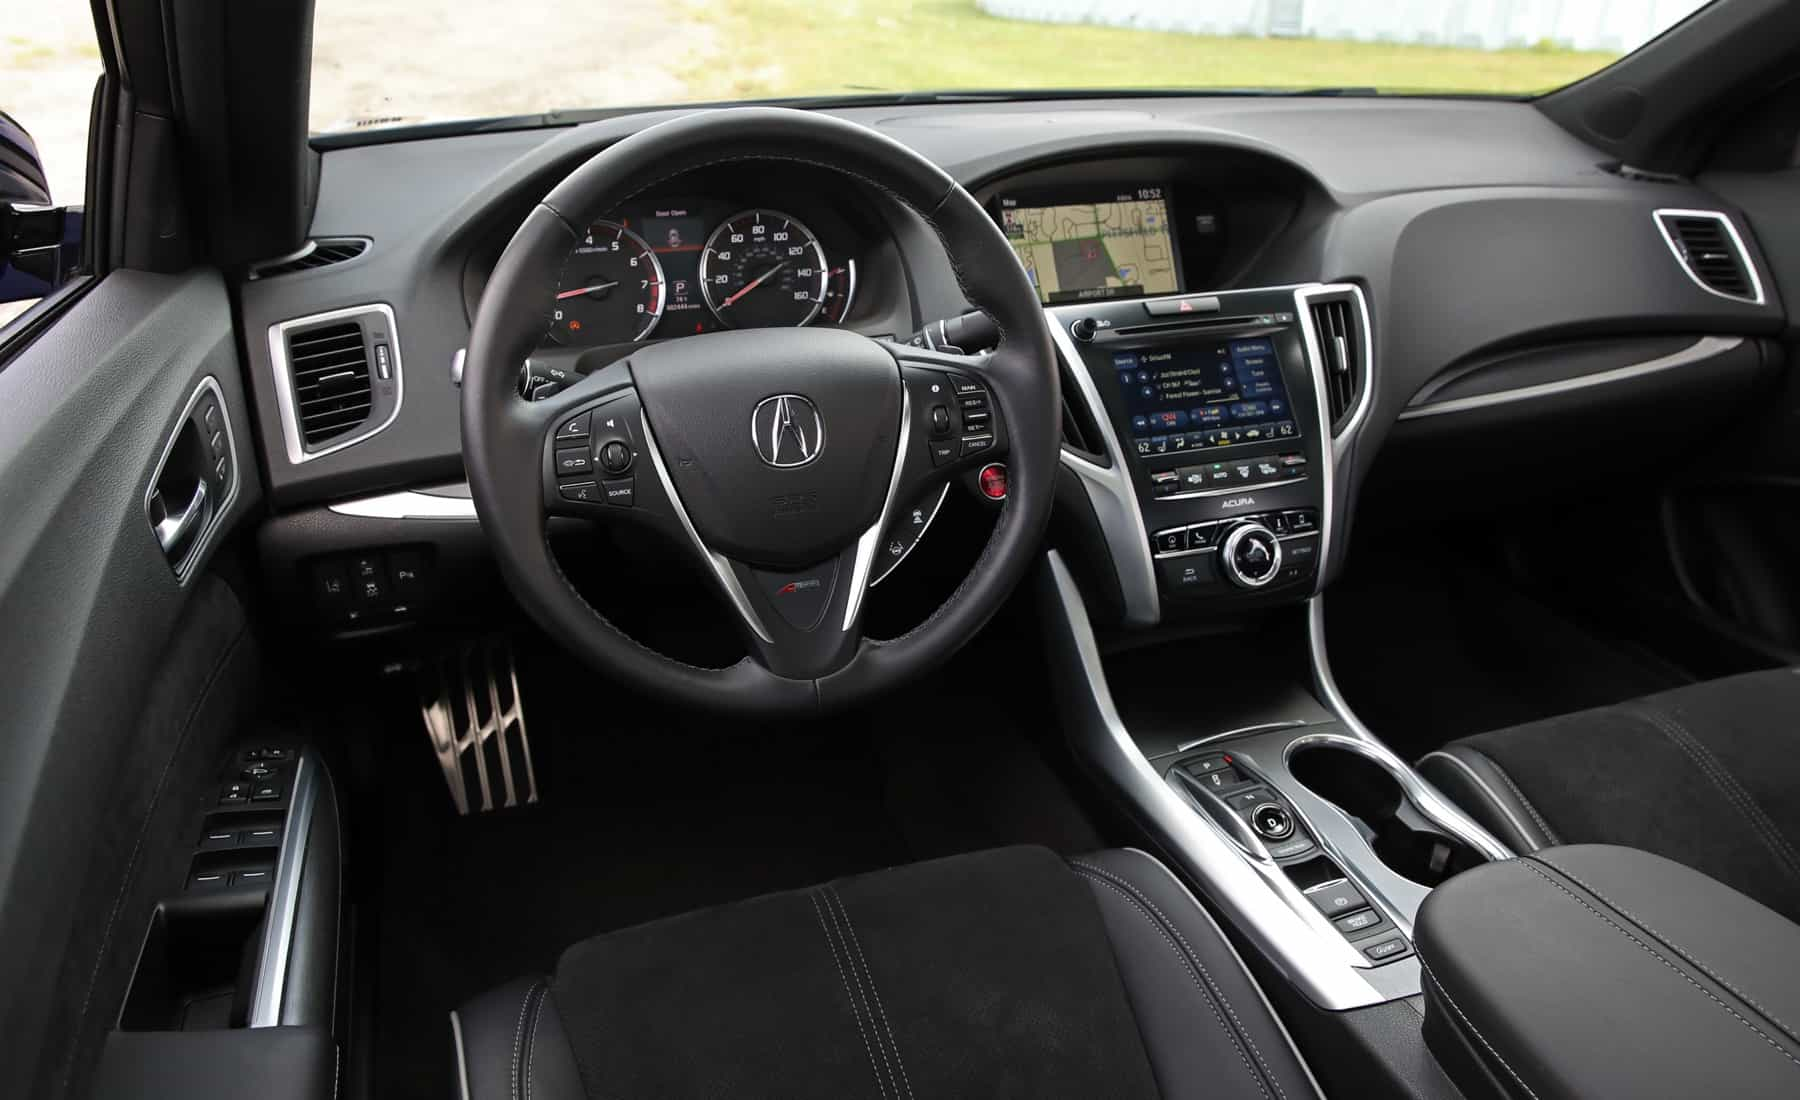 2018 Acura TLX Interior Dashboard And Steering (Photo 30 of 46)